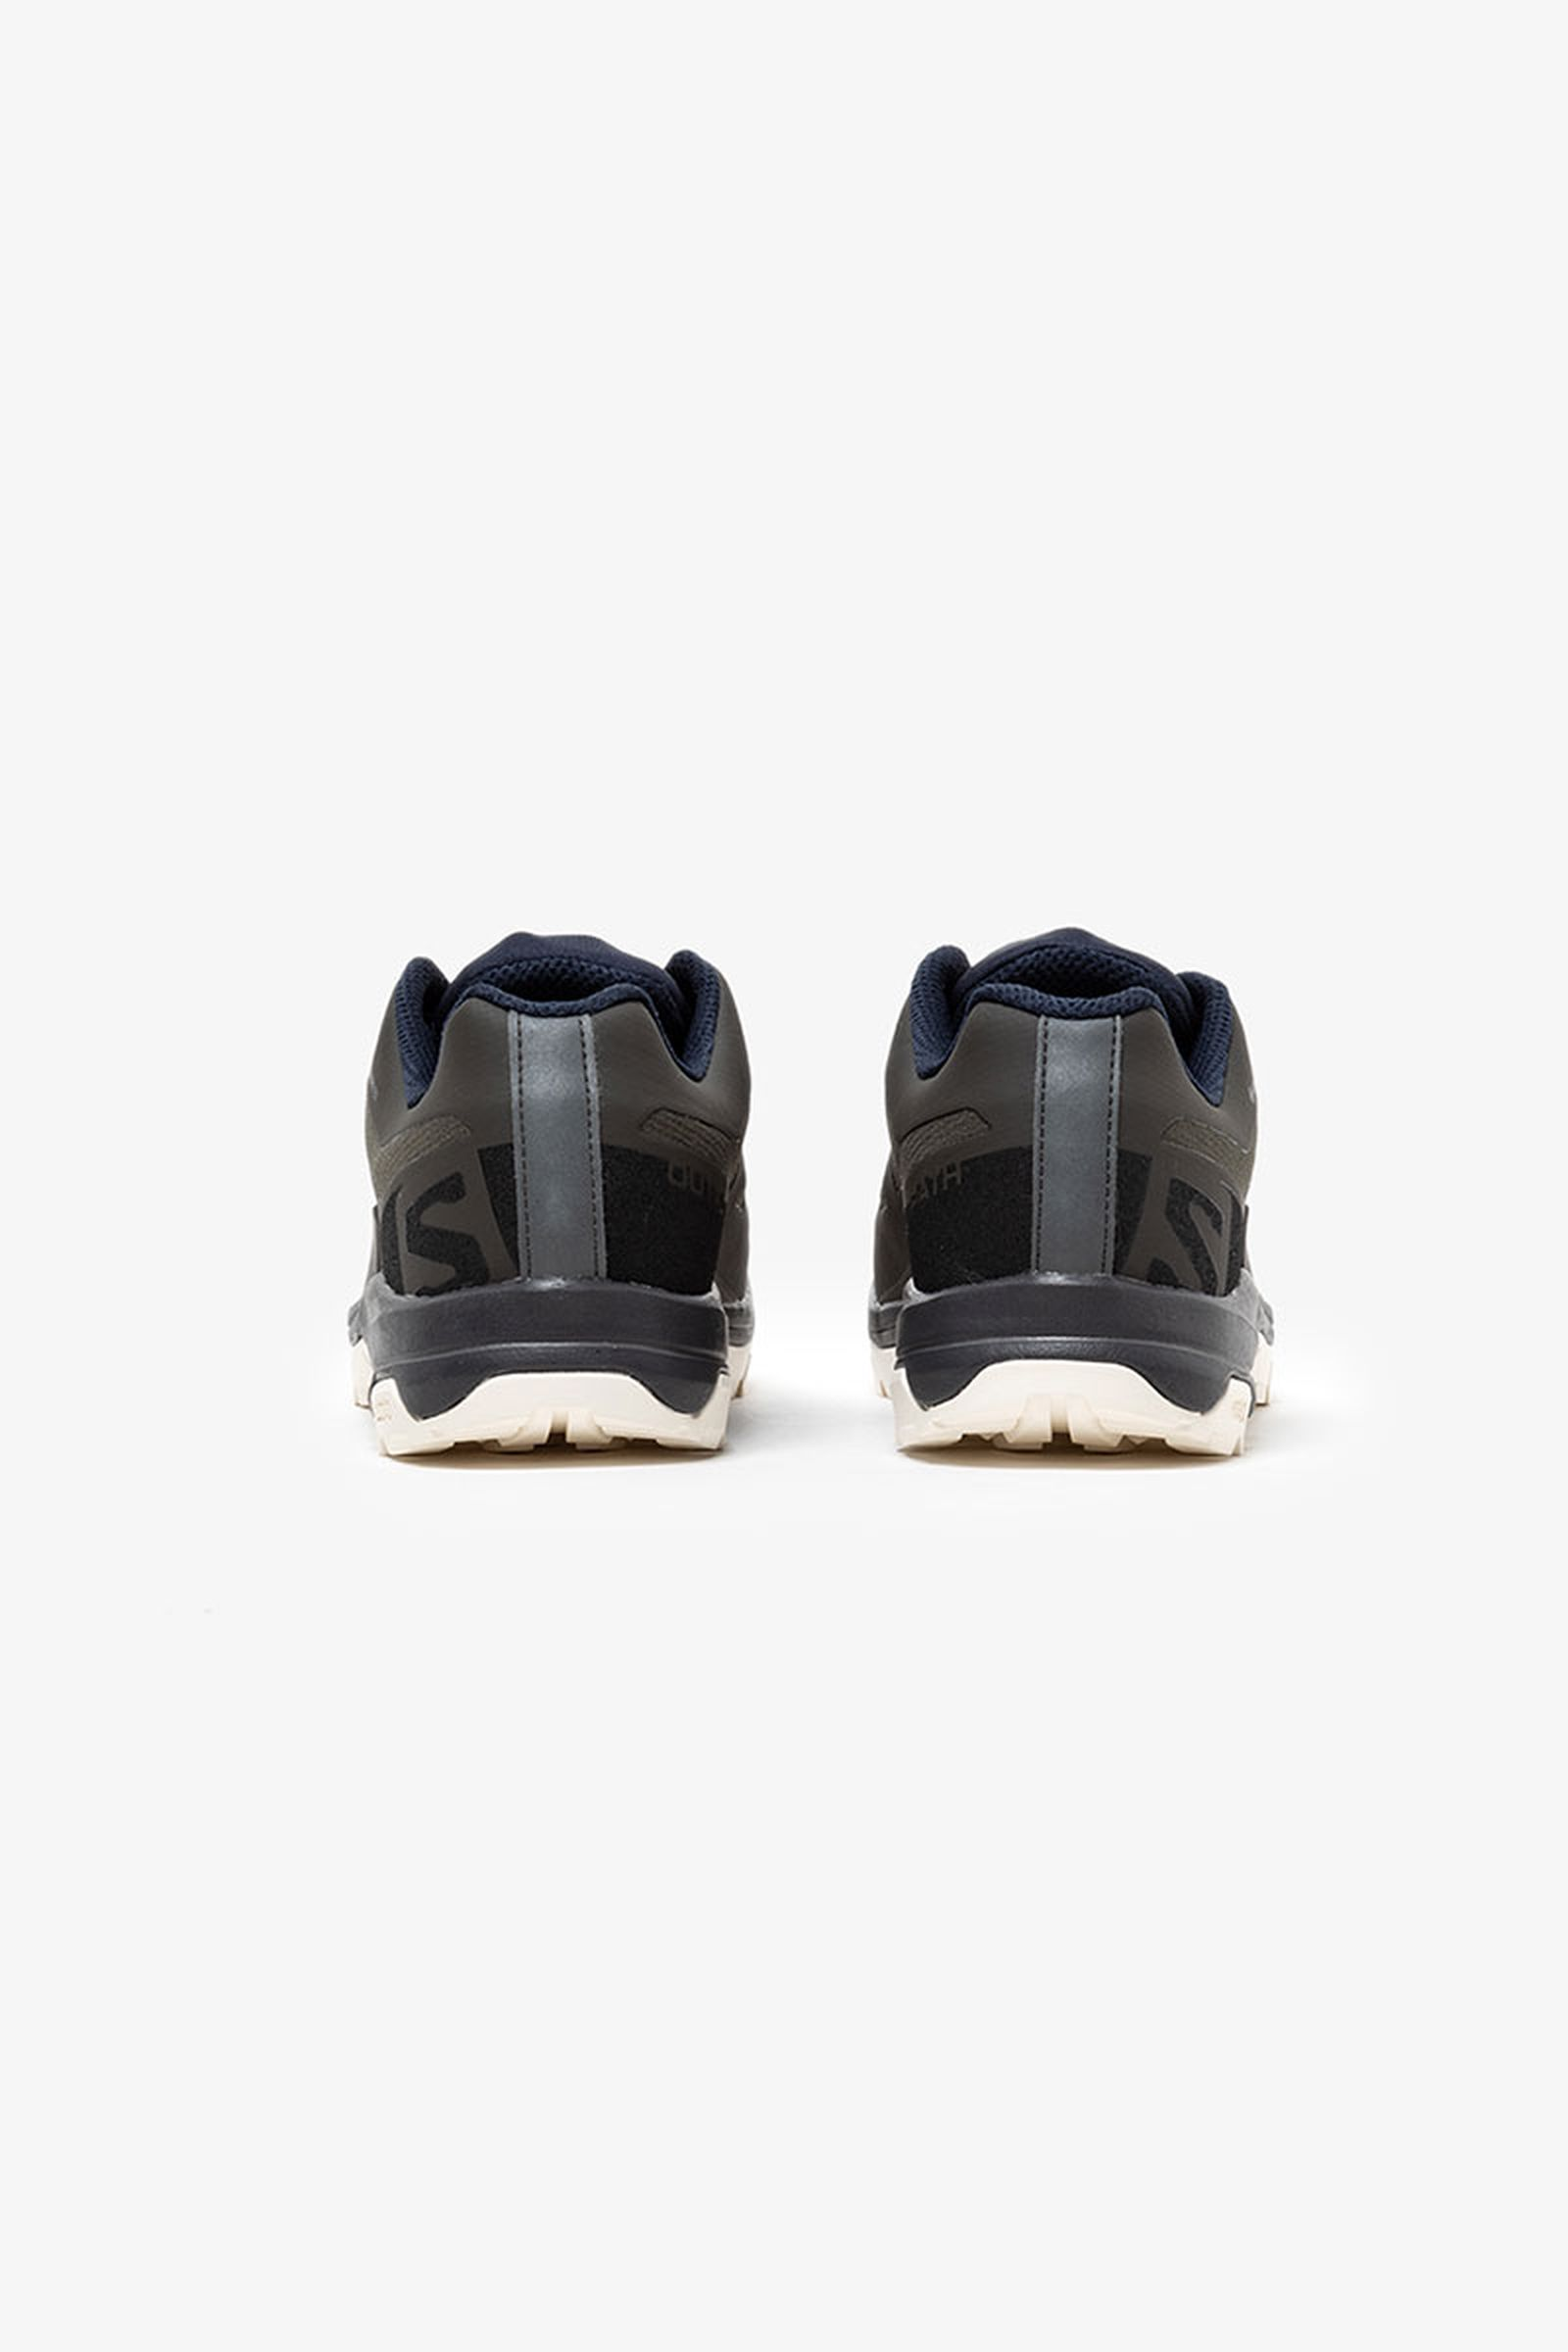 SALOMON OUTPATH GTX BY AND WANDER